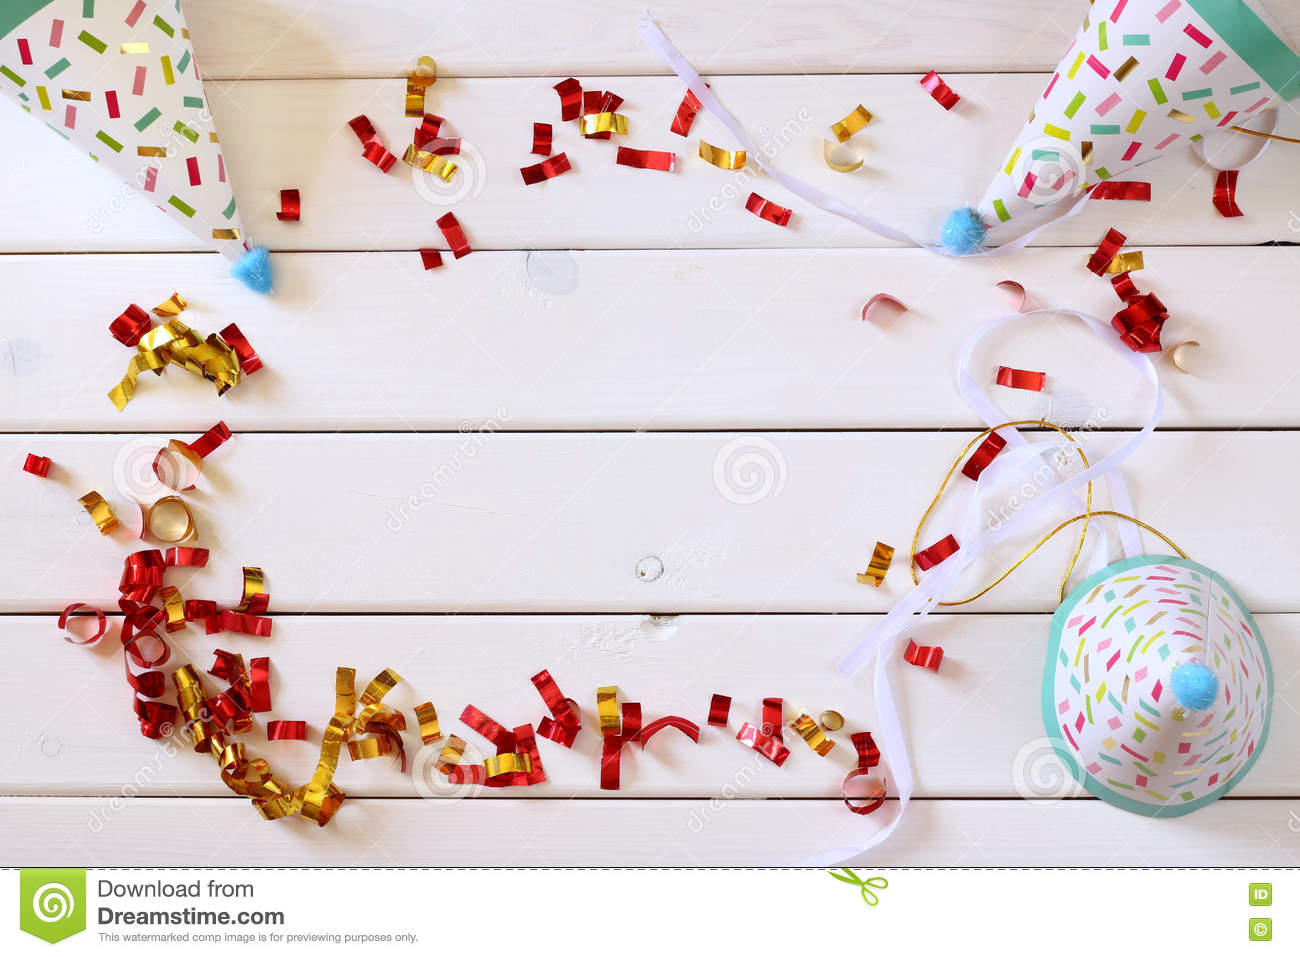 Party hat next to colorful confetti on wooden table